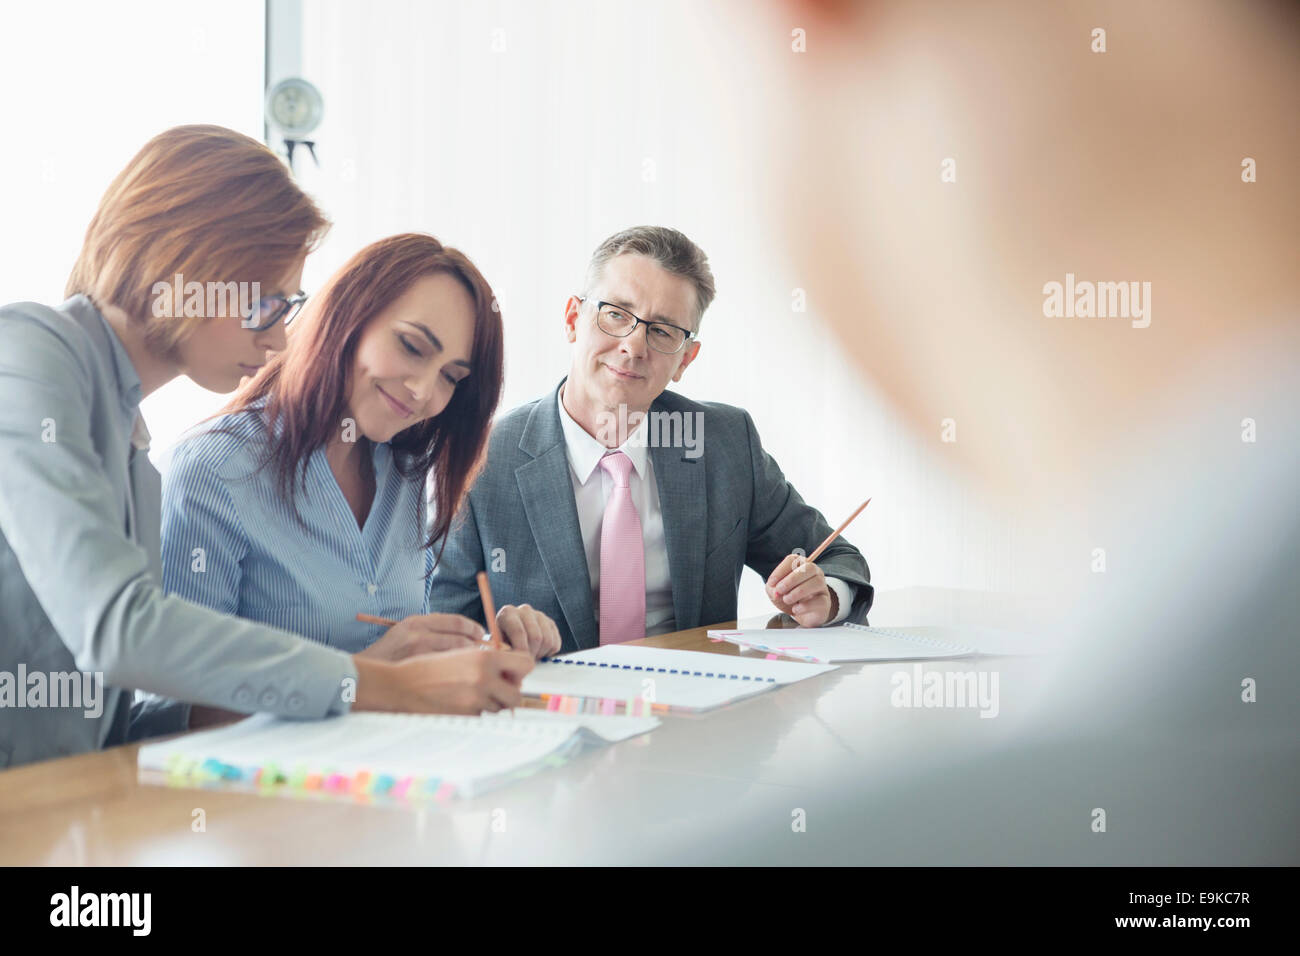 Business people working together at conference table - Stock Image